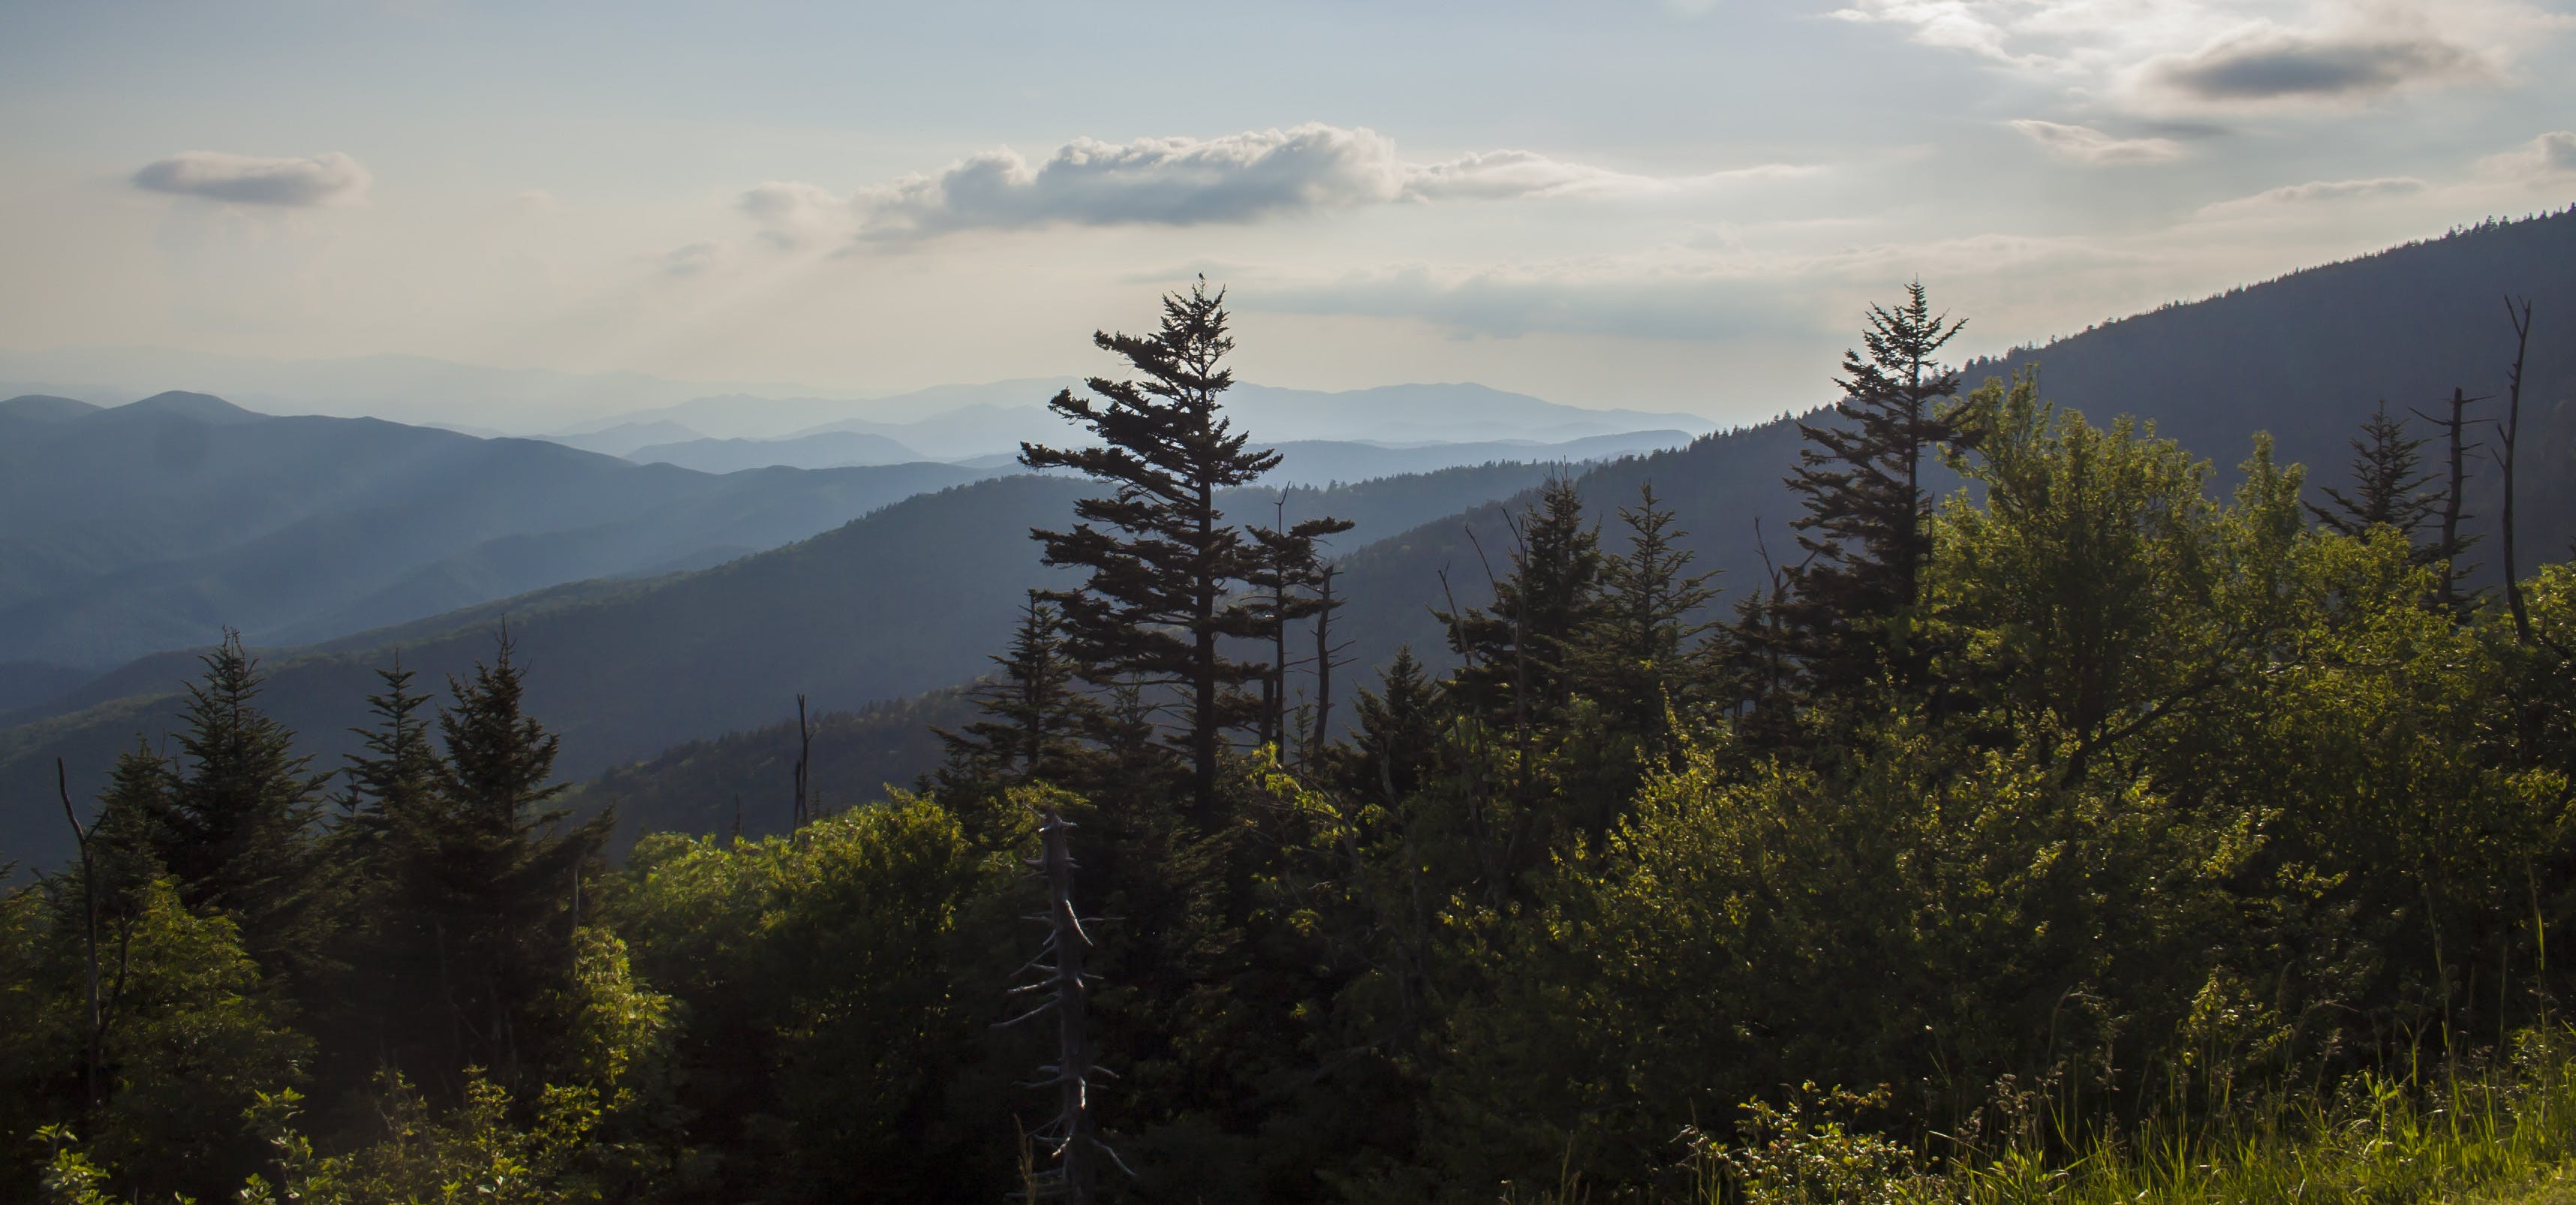 Free stock photo of mountains, nature, smoky mountains